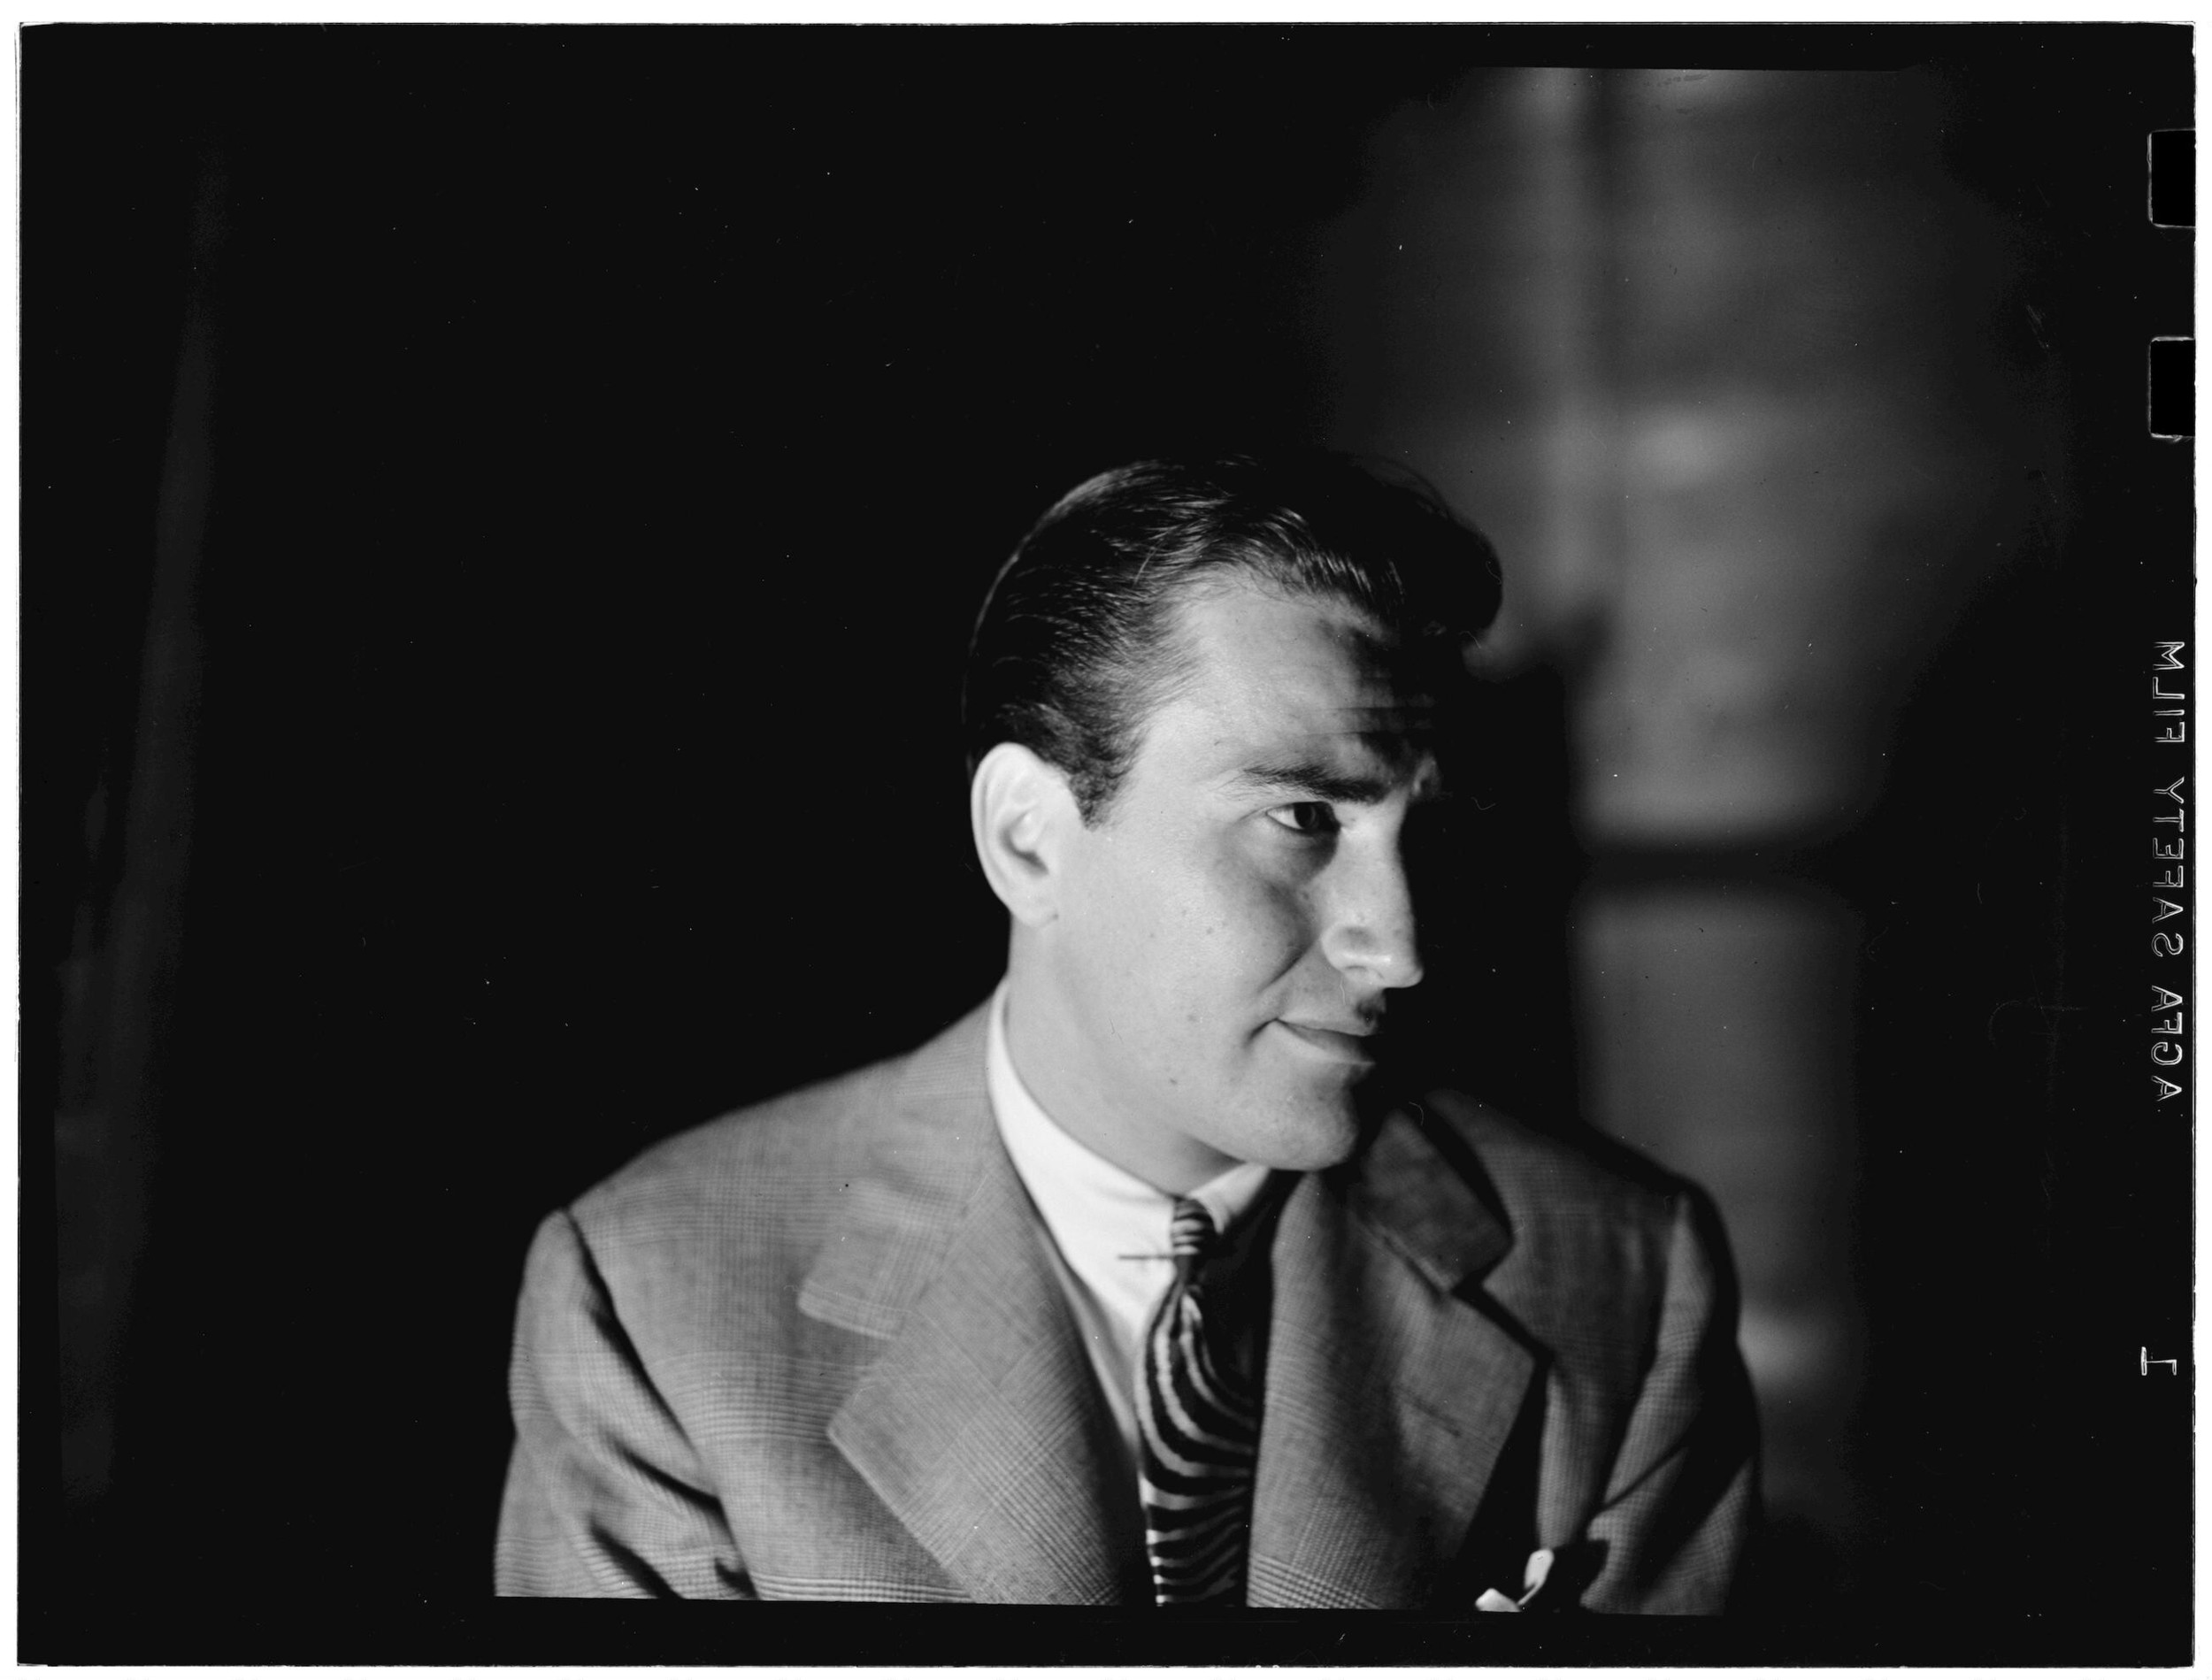 Portrait of Artie Shaw, New York, N.Y., between 1946 and 1948. William P. Gottlieb/Ira and Leonore S. Gershwin Fund Collection, Music Division, Library of Congress.